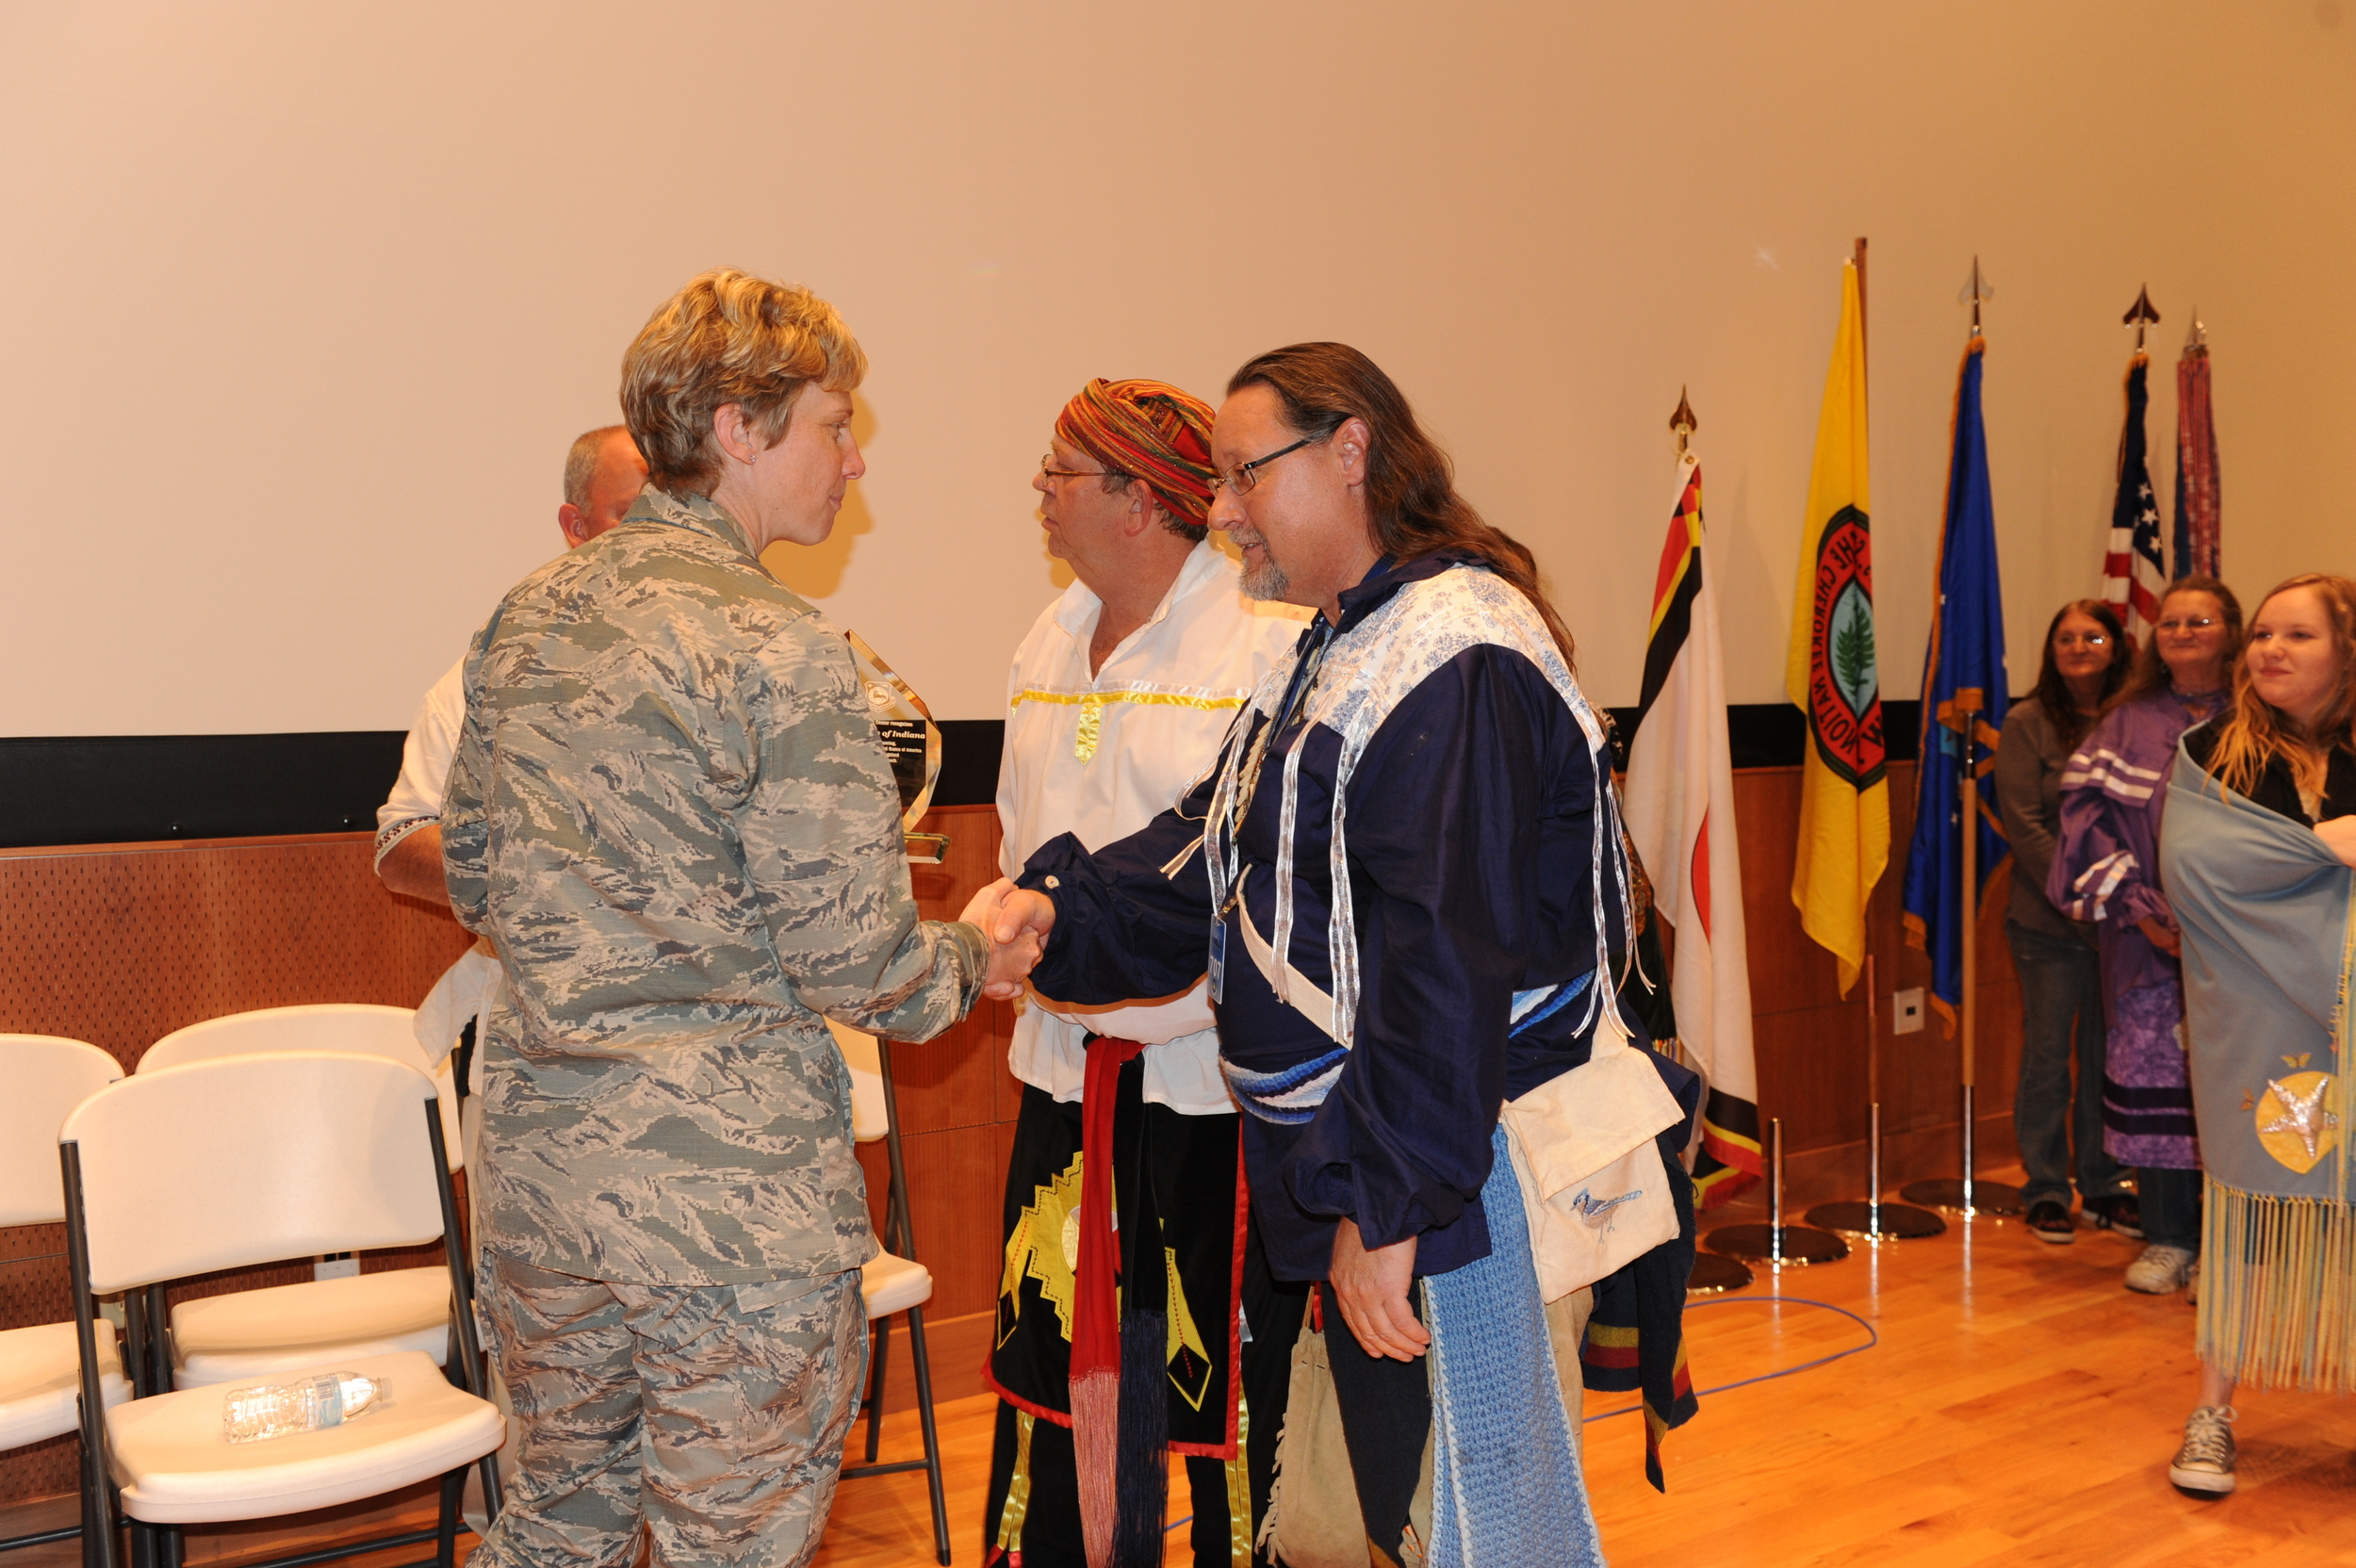 The Indiana Miami receiving a Recognition award from the Base Commander.